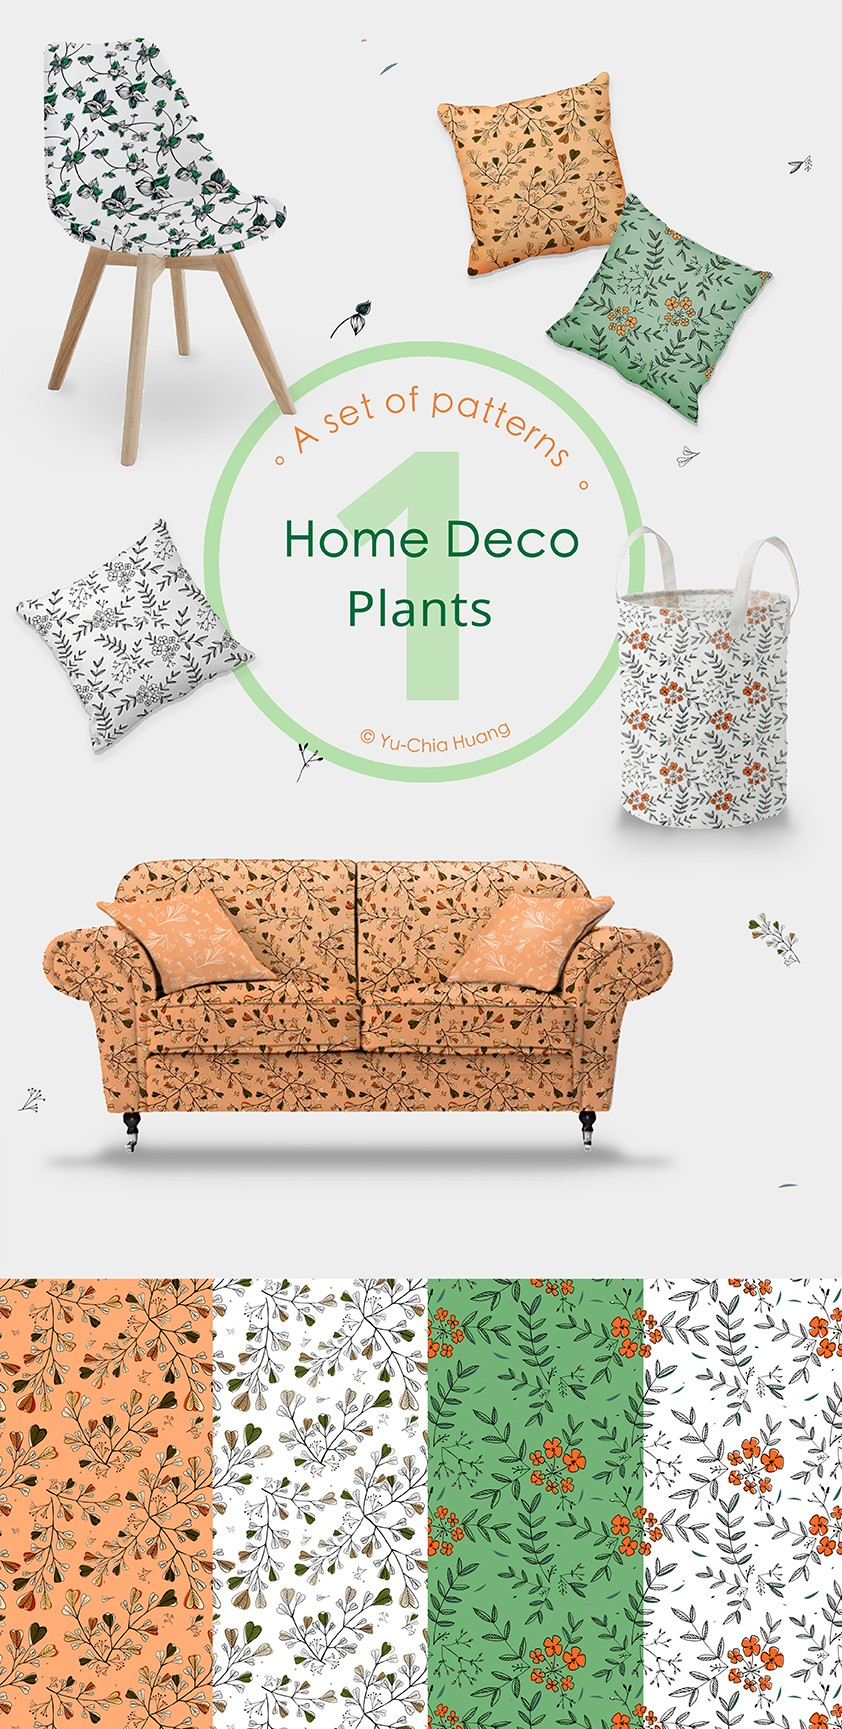 layout_deco-1-small